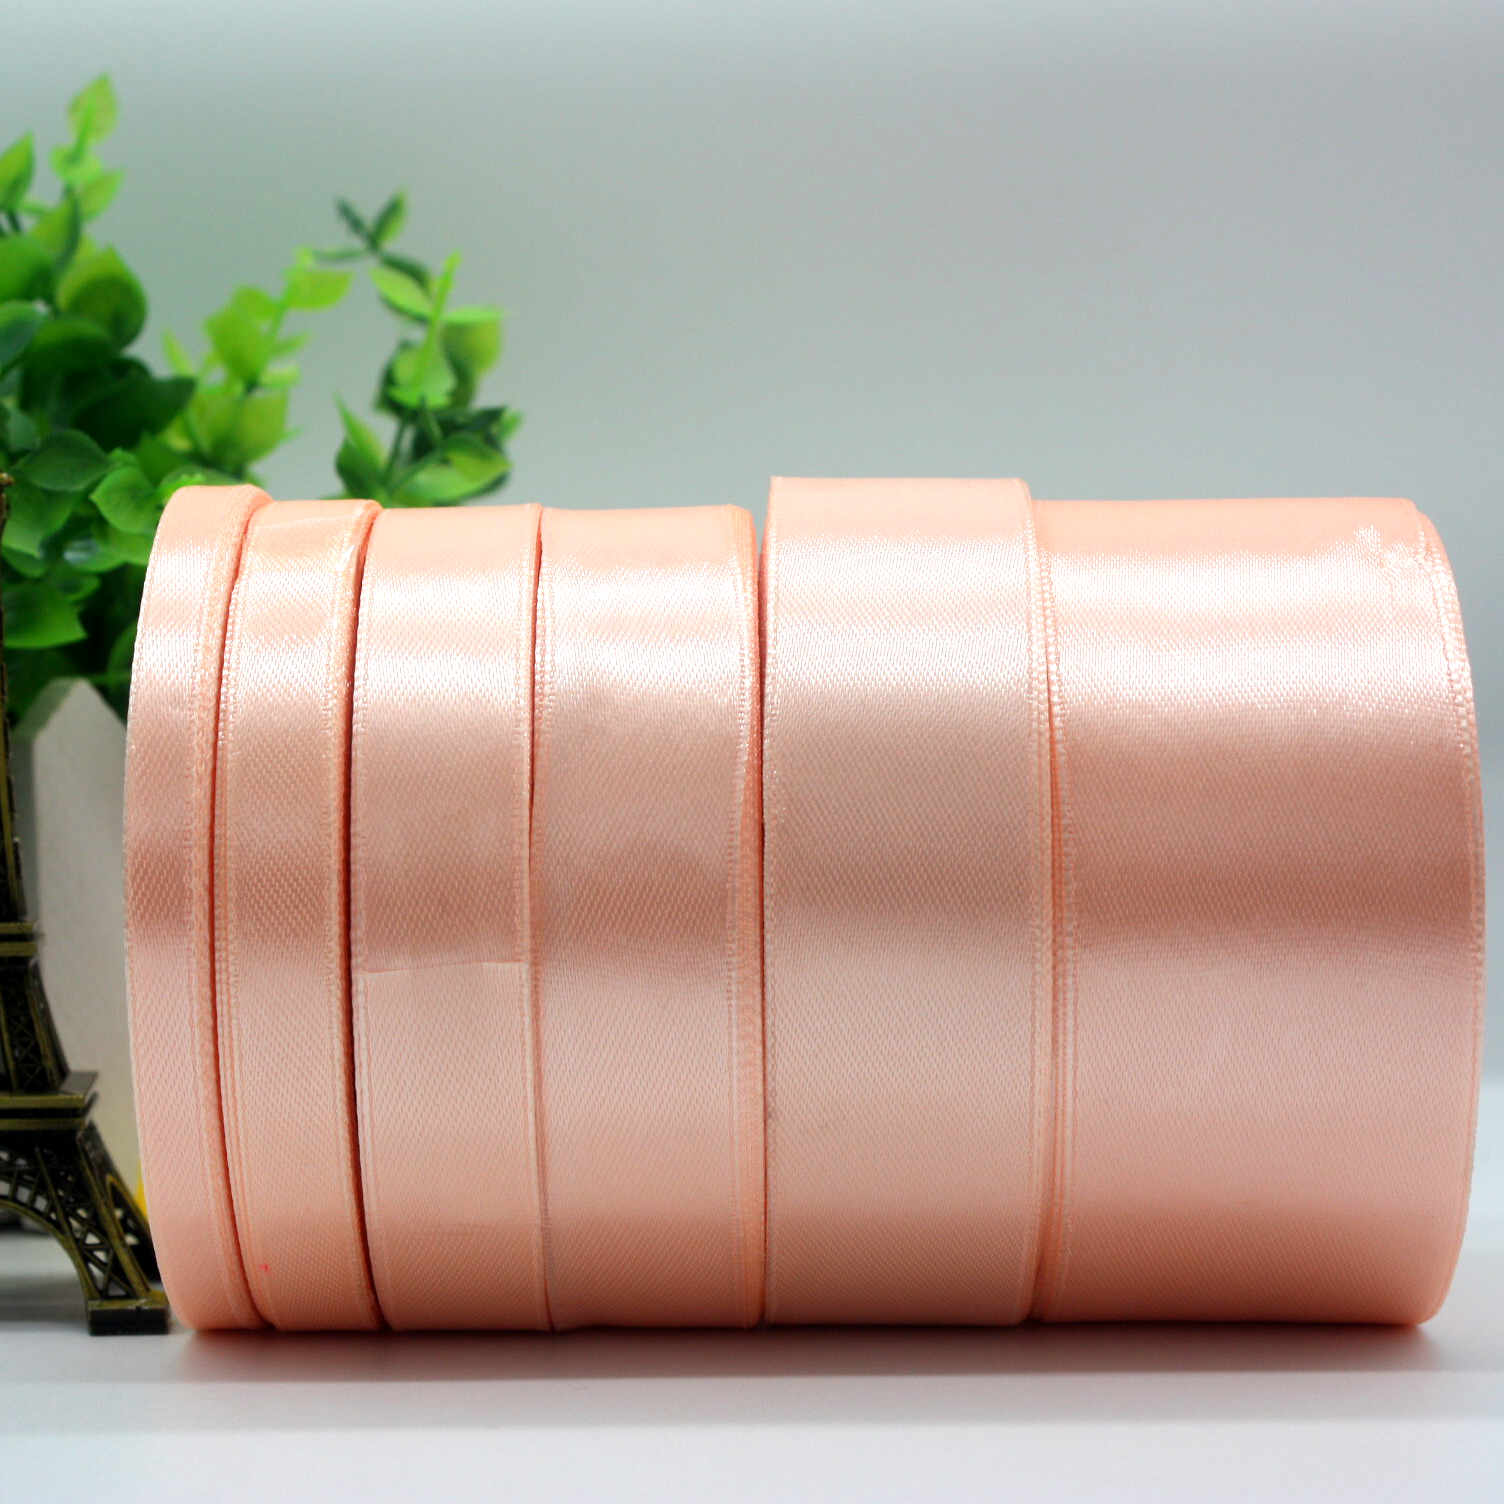 spool of Quality Satin Ribbon 10mm wide Full Roll Approx 25 Metres per roll